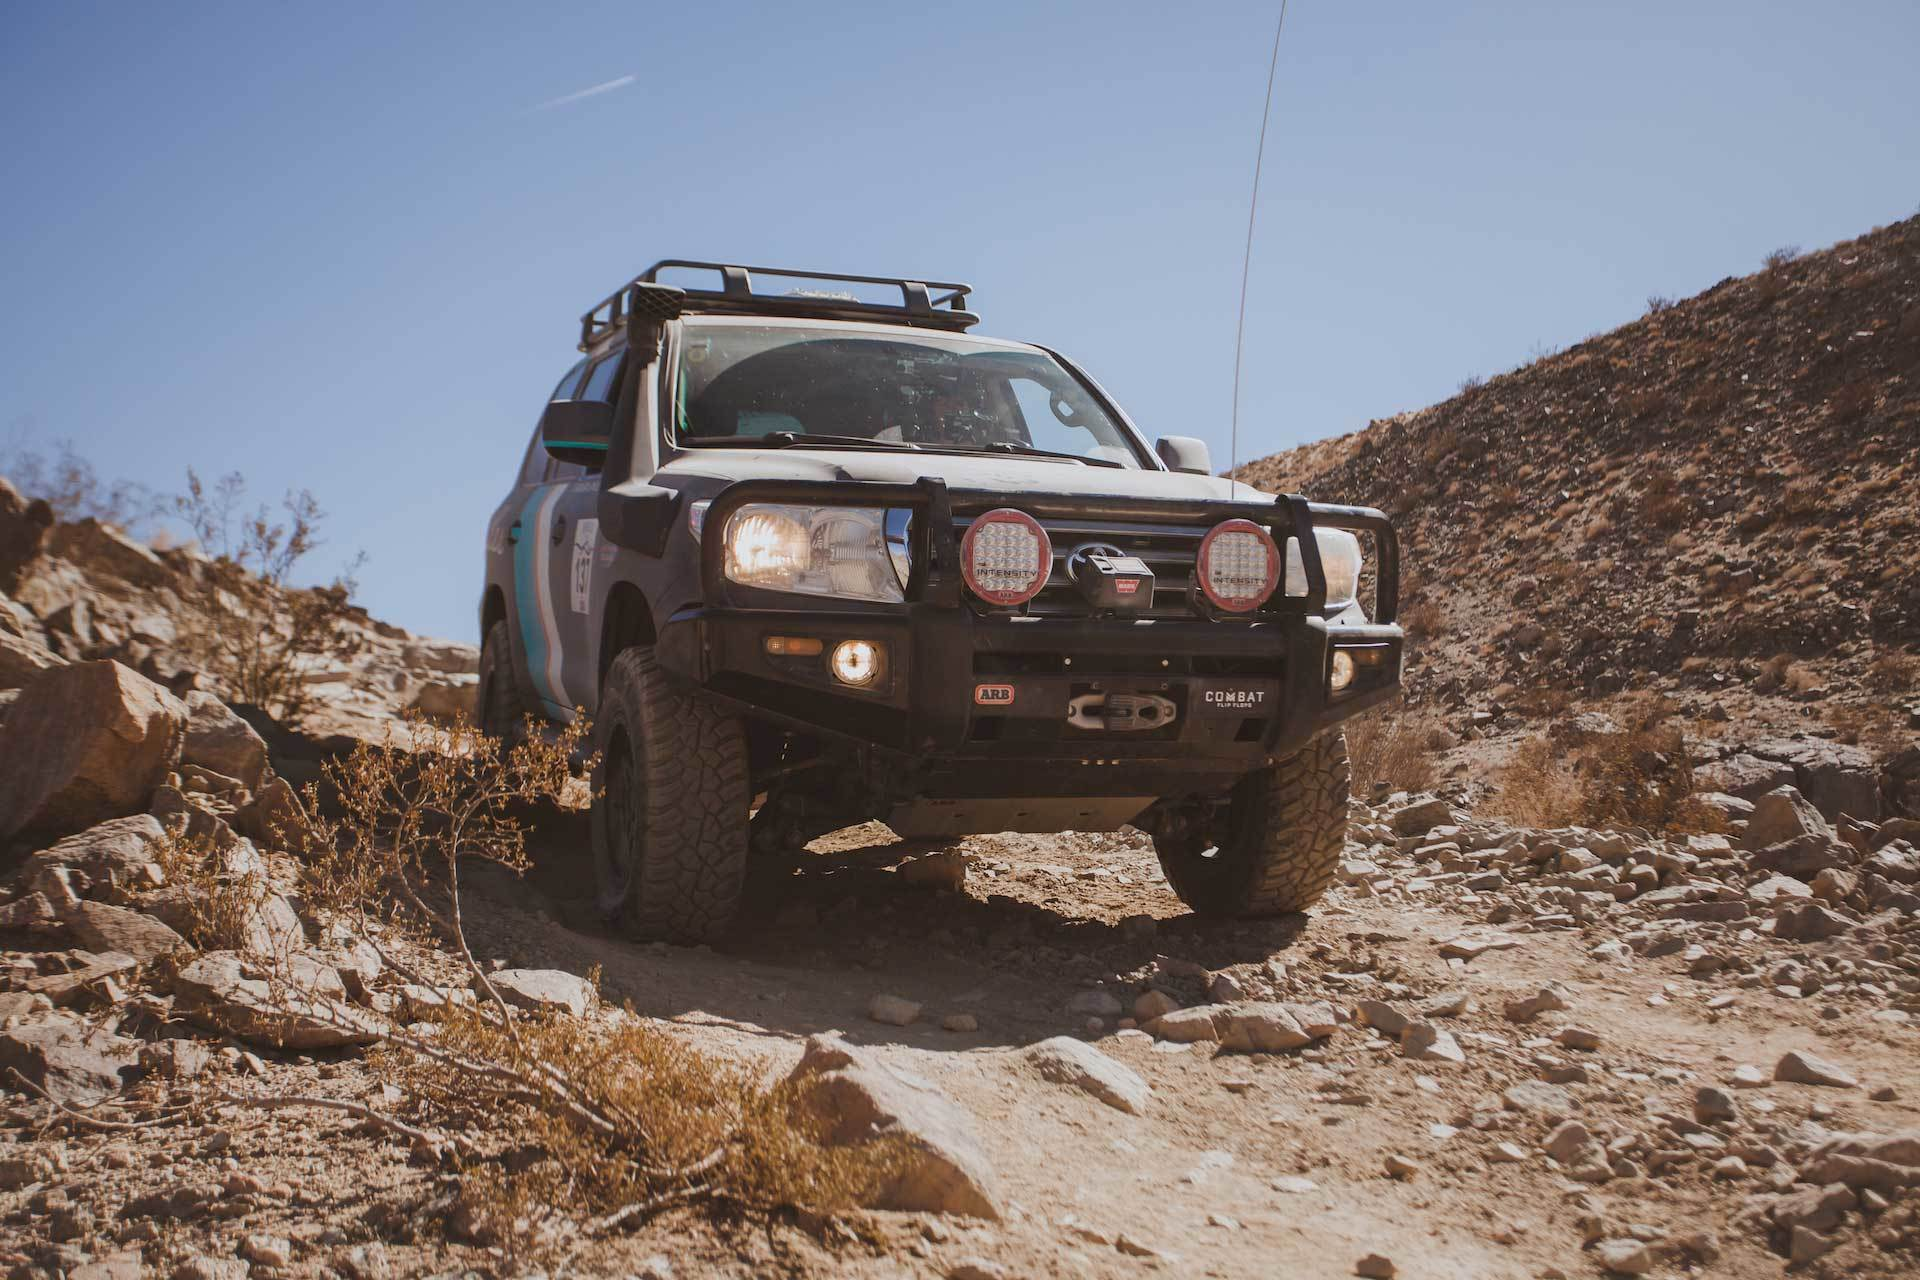 Toyota Tacoma Overland Build >> 2008 Toyota Land Cruiser 200 Series Build - Expedition Overland